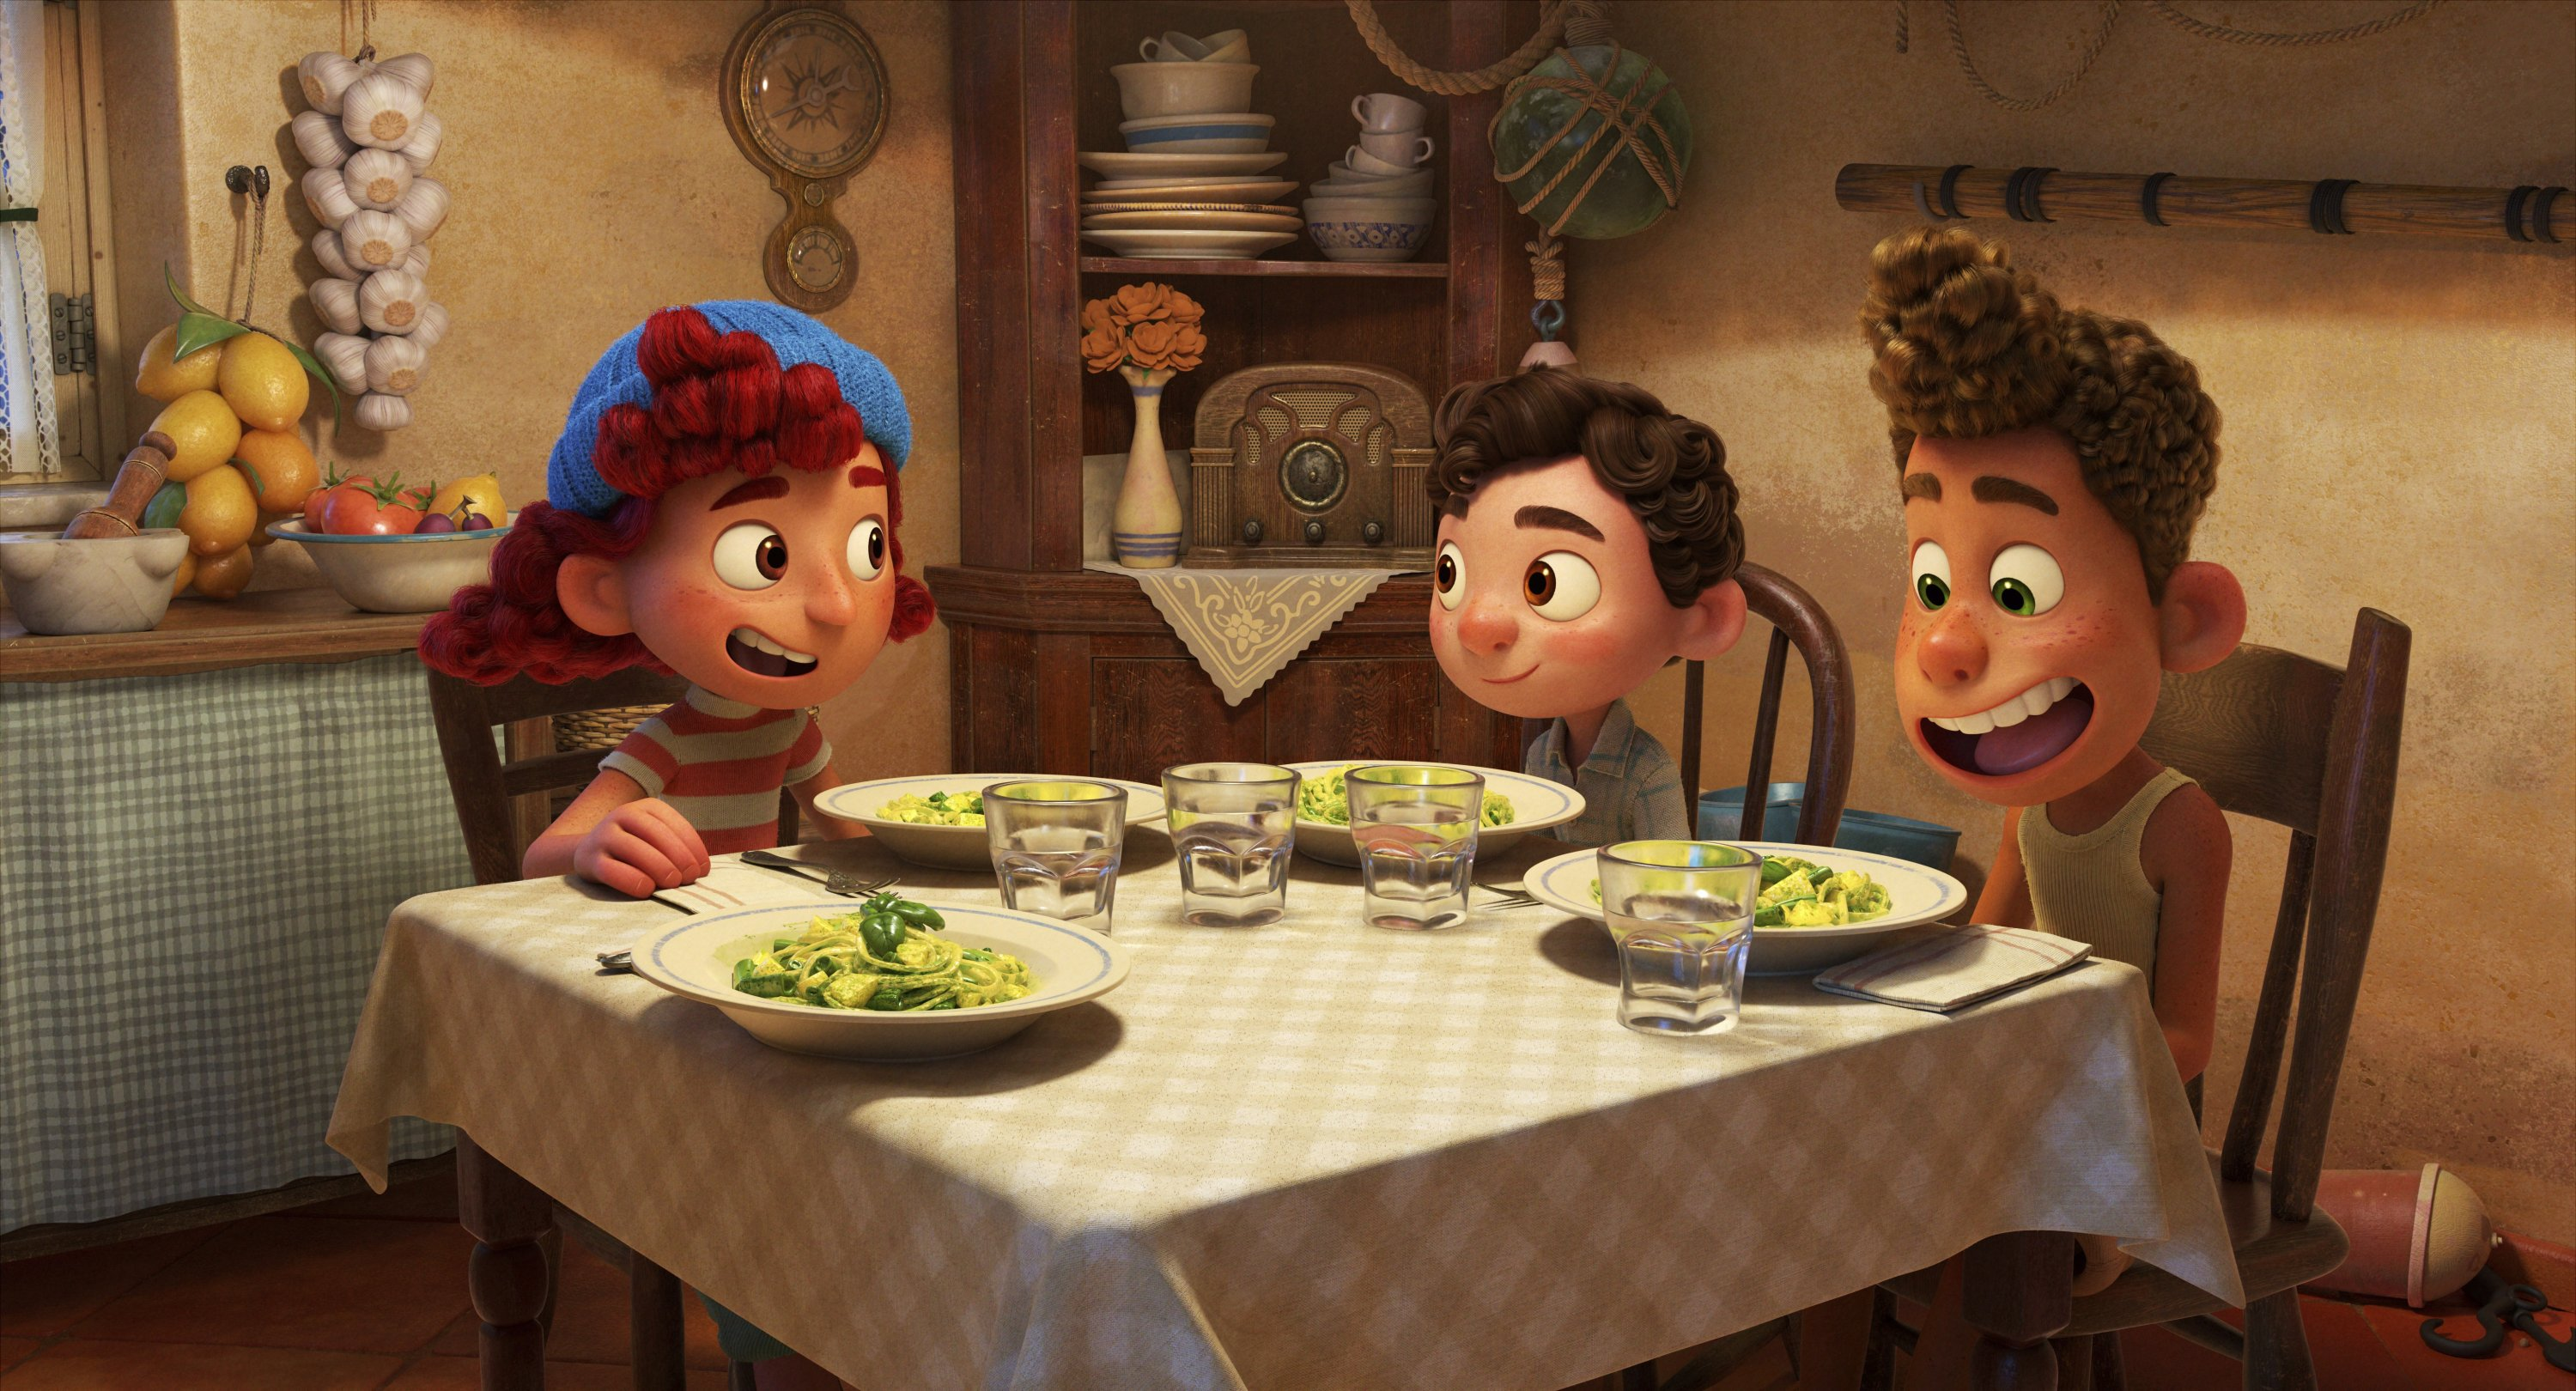 Giulia (L), voiced by Emma Berman; Luca (C), voiced by Jacob Tremblay, and Alberto, voiced by Jack Dylan Grazer, sit around at a table in a scene from the animated film 'Luca.' (Photo by Disney via AP)